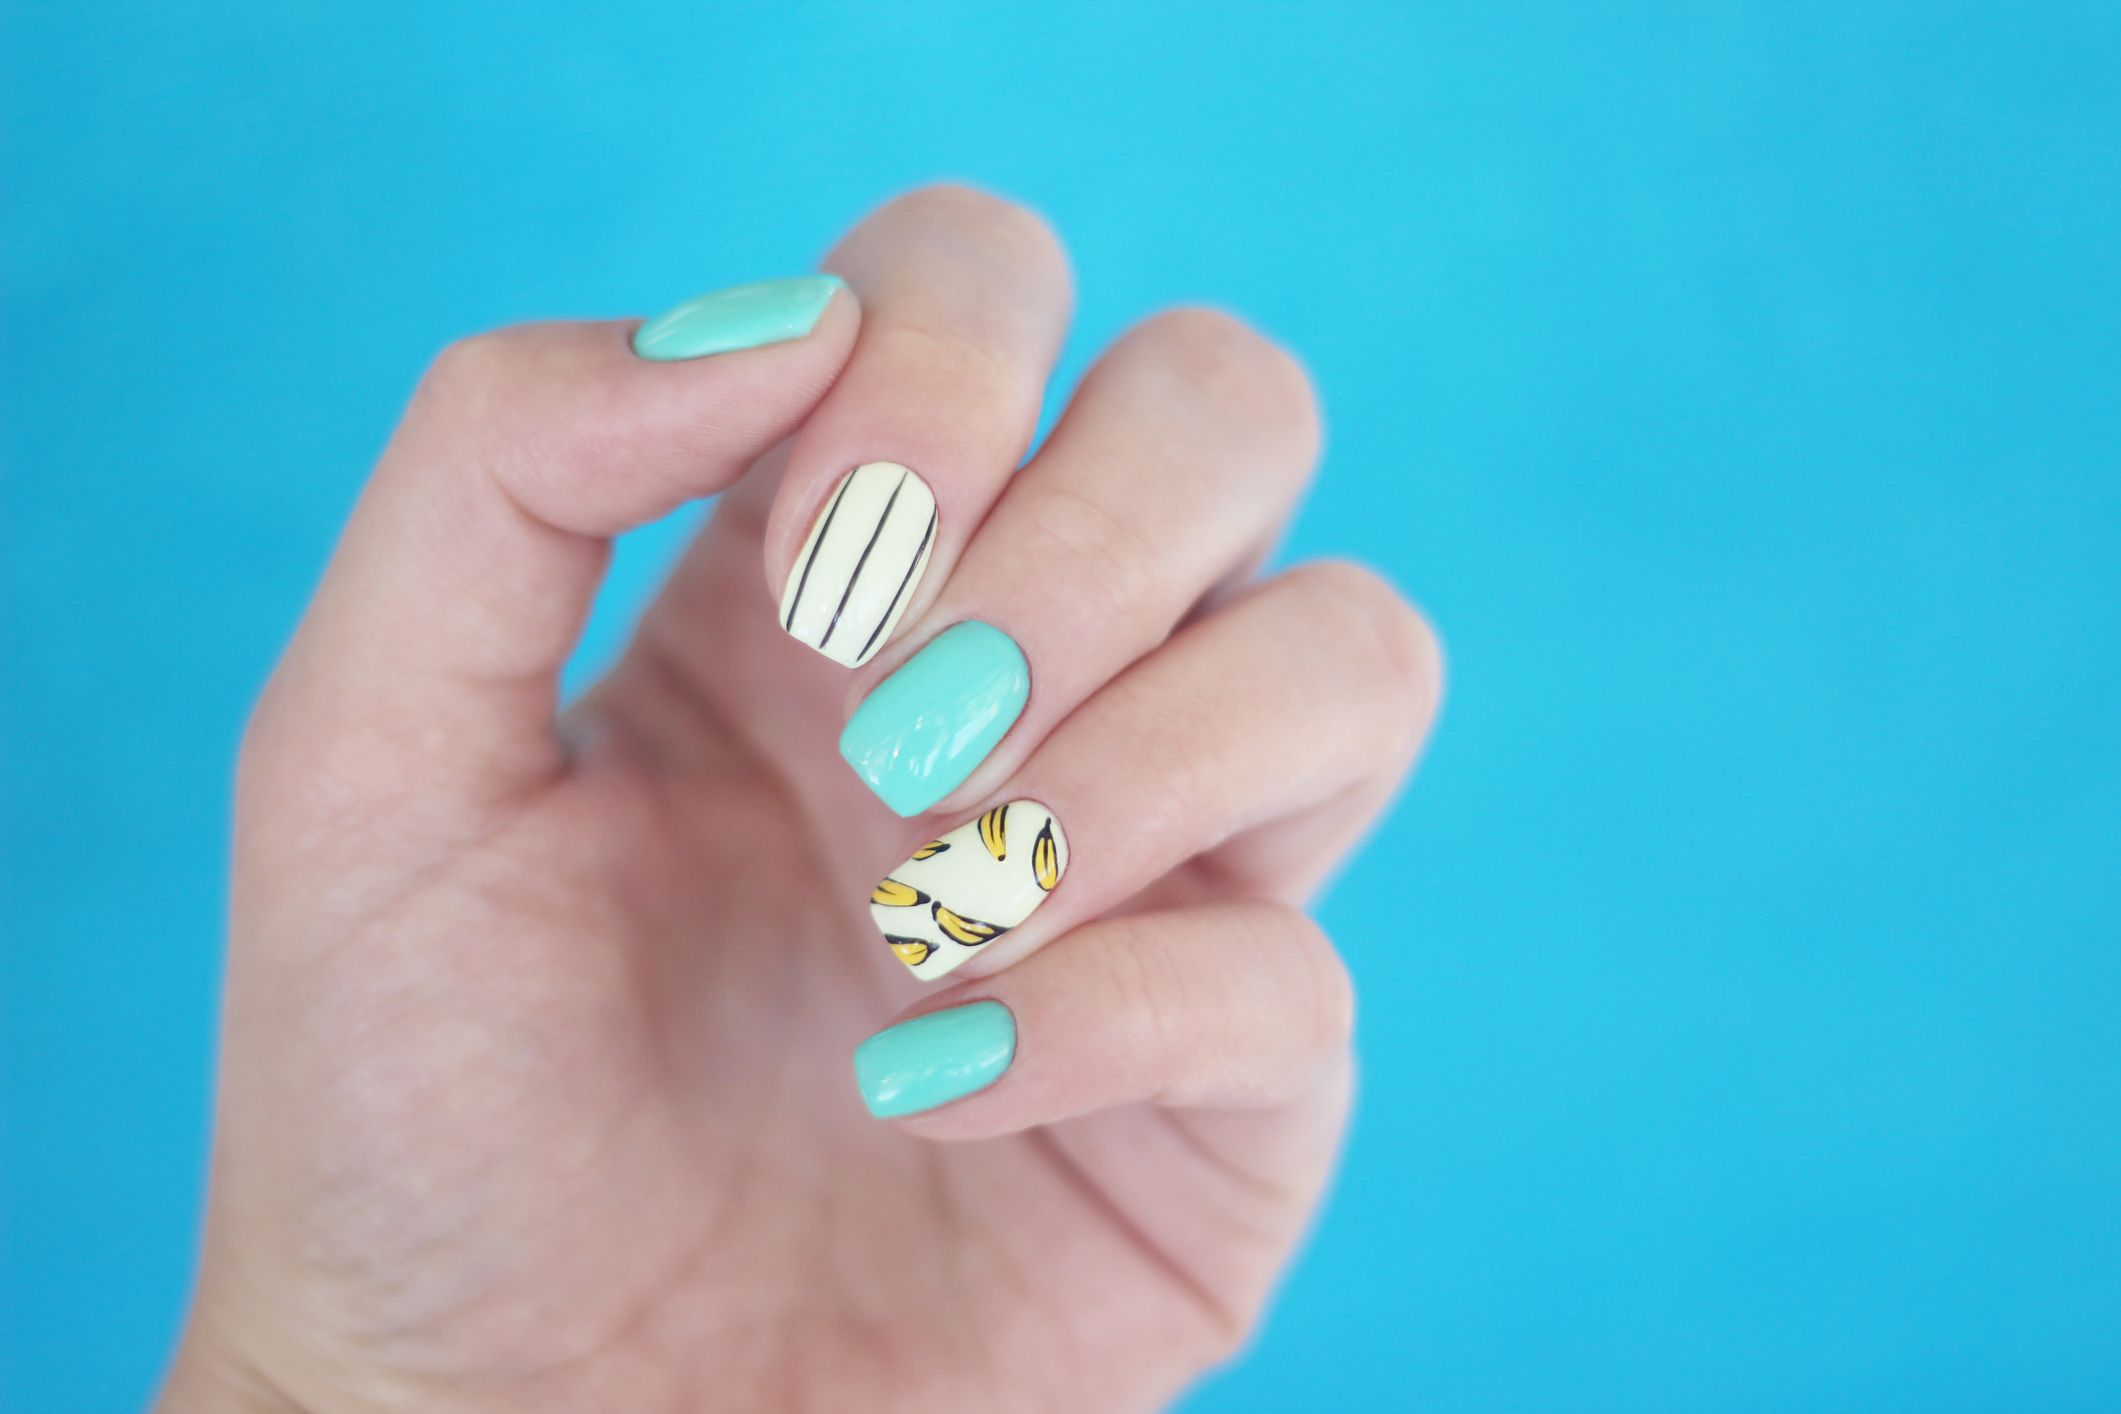 Nail Art Designs And Ideas For Summer Nail Art For Memorial Day